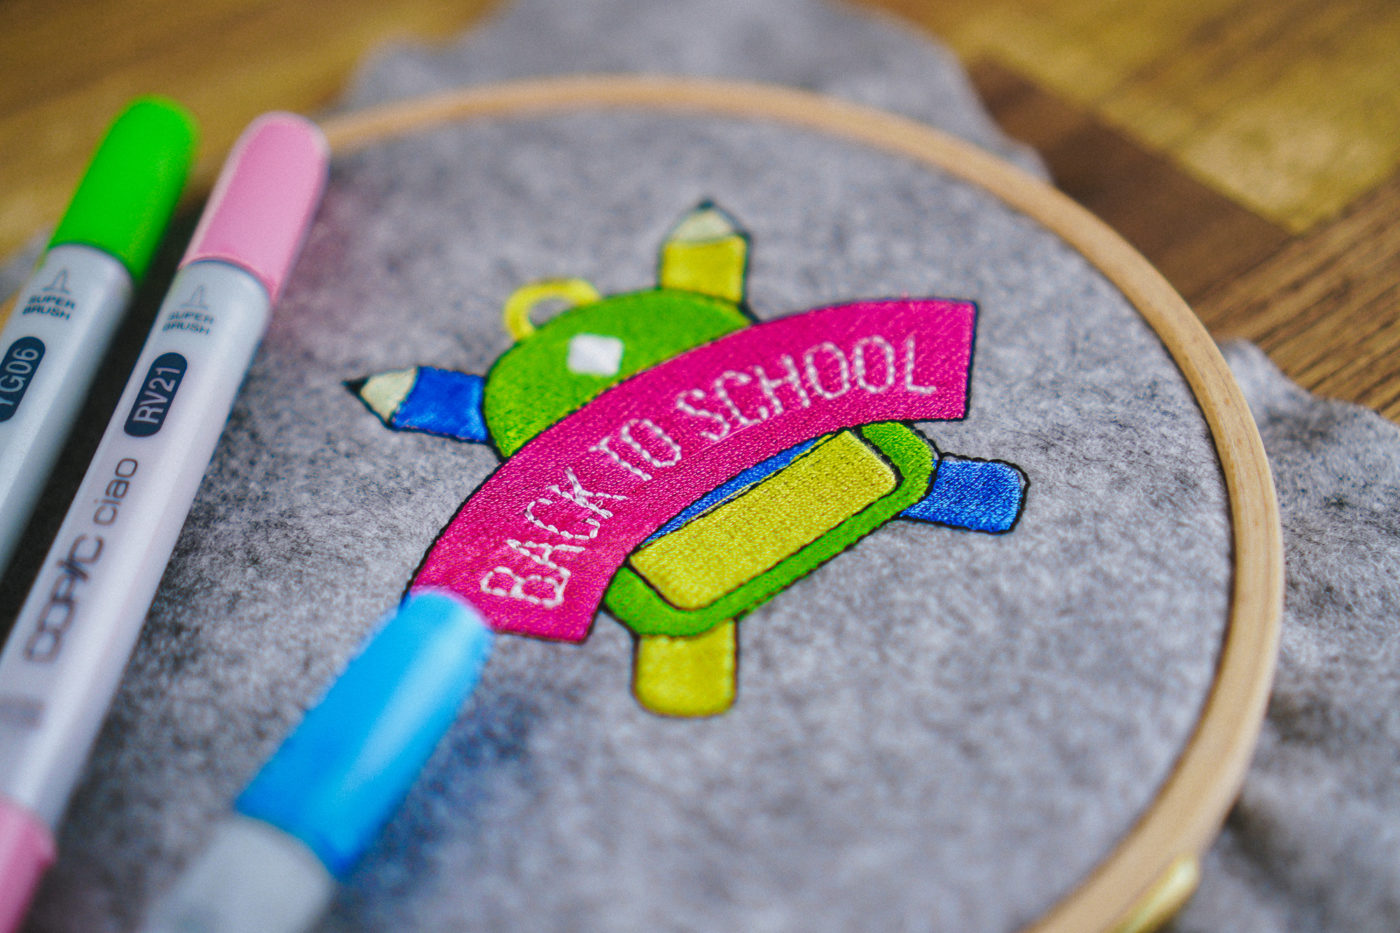 Stickdatei Schulanfang Anwendungsbeispiel back to school embroidery designs back to school stickdatei schulanfang back to school 02 1400x933